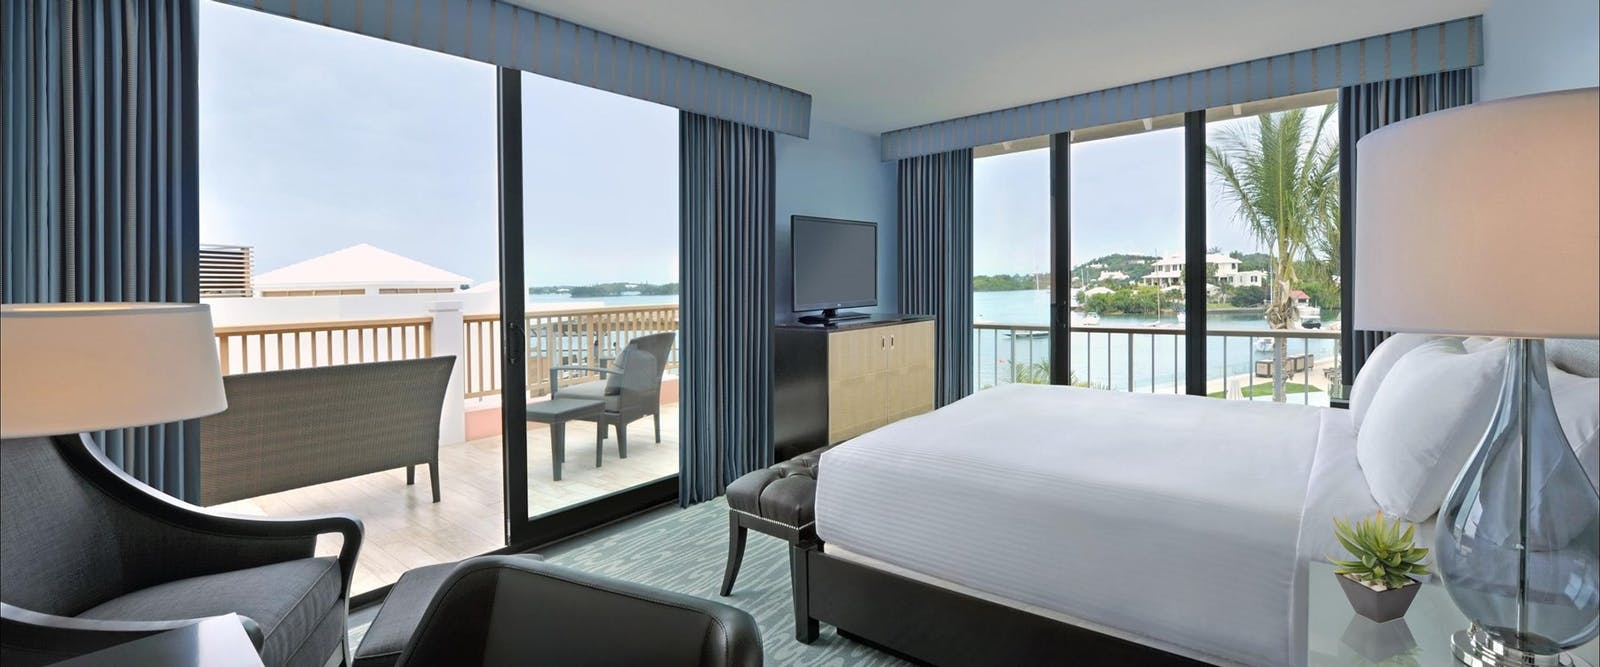 Two Bedroom Suite at Hamilton Princess & Beach Club, Bermuda